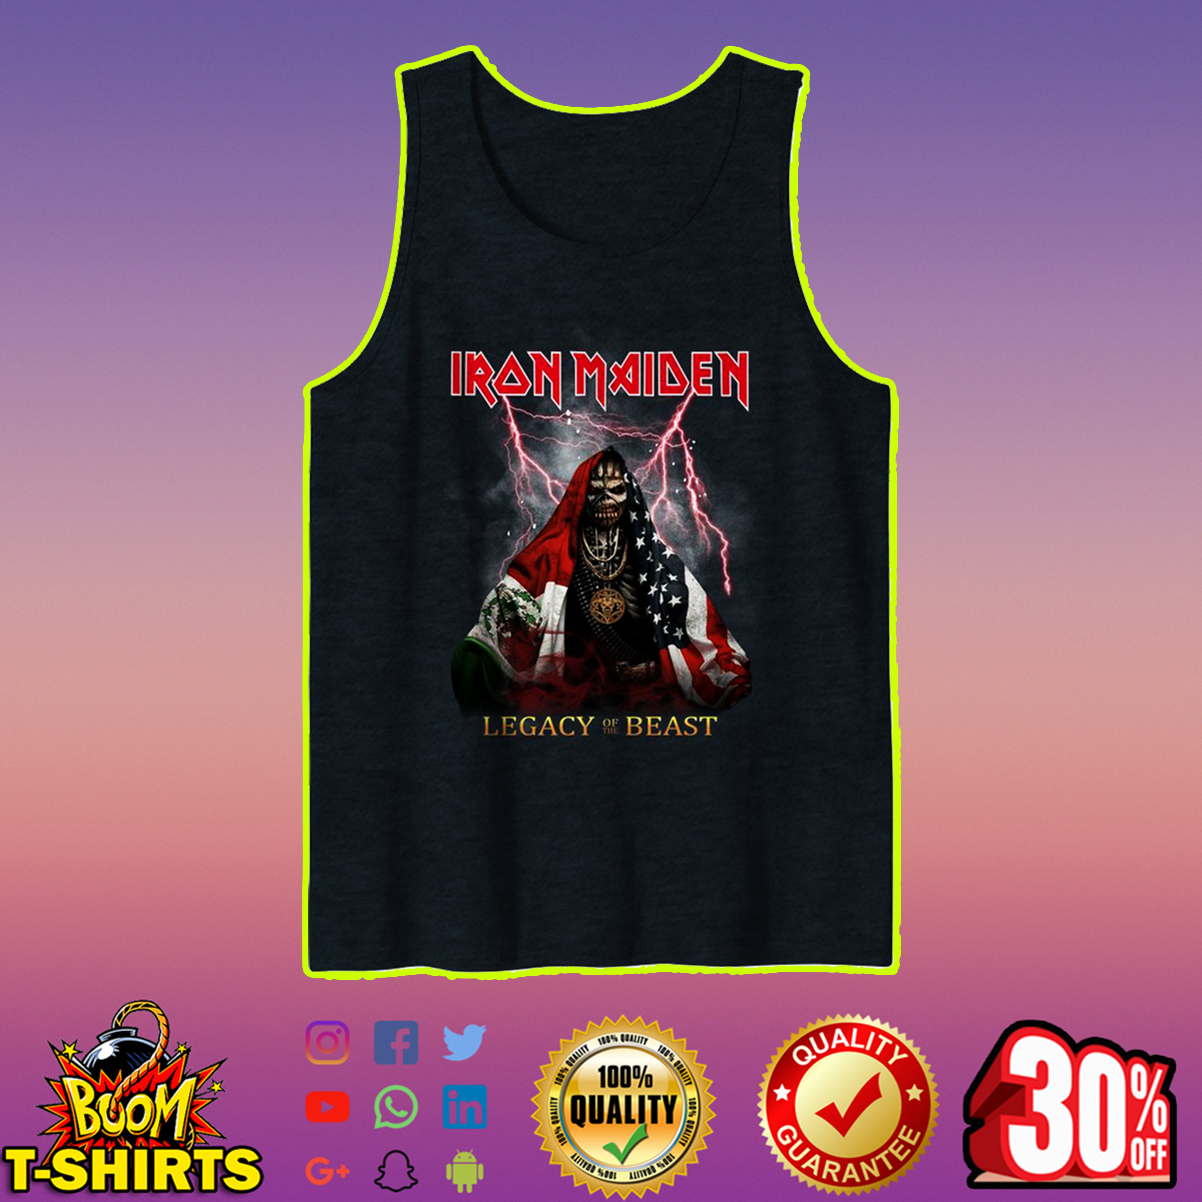 Iron Maiden legacy of the beast tank top